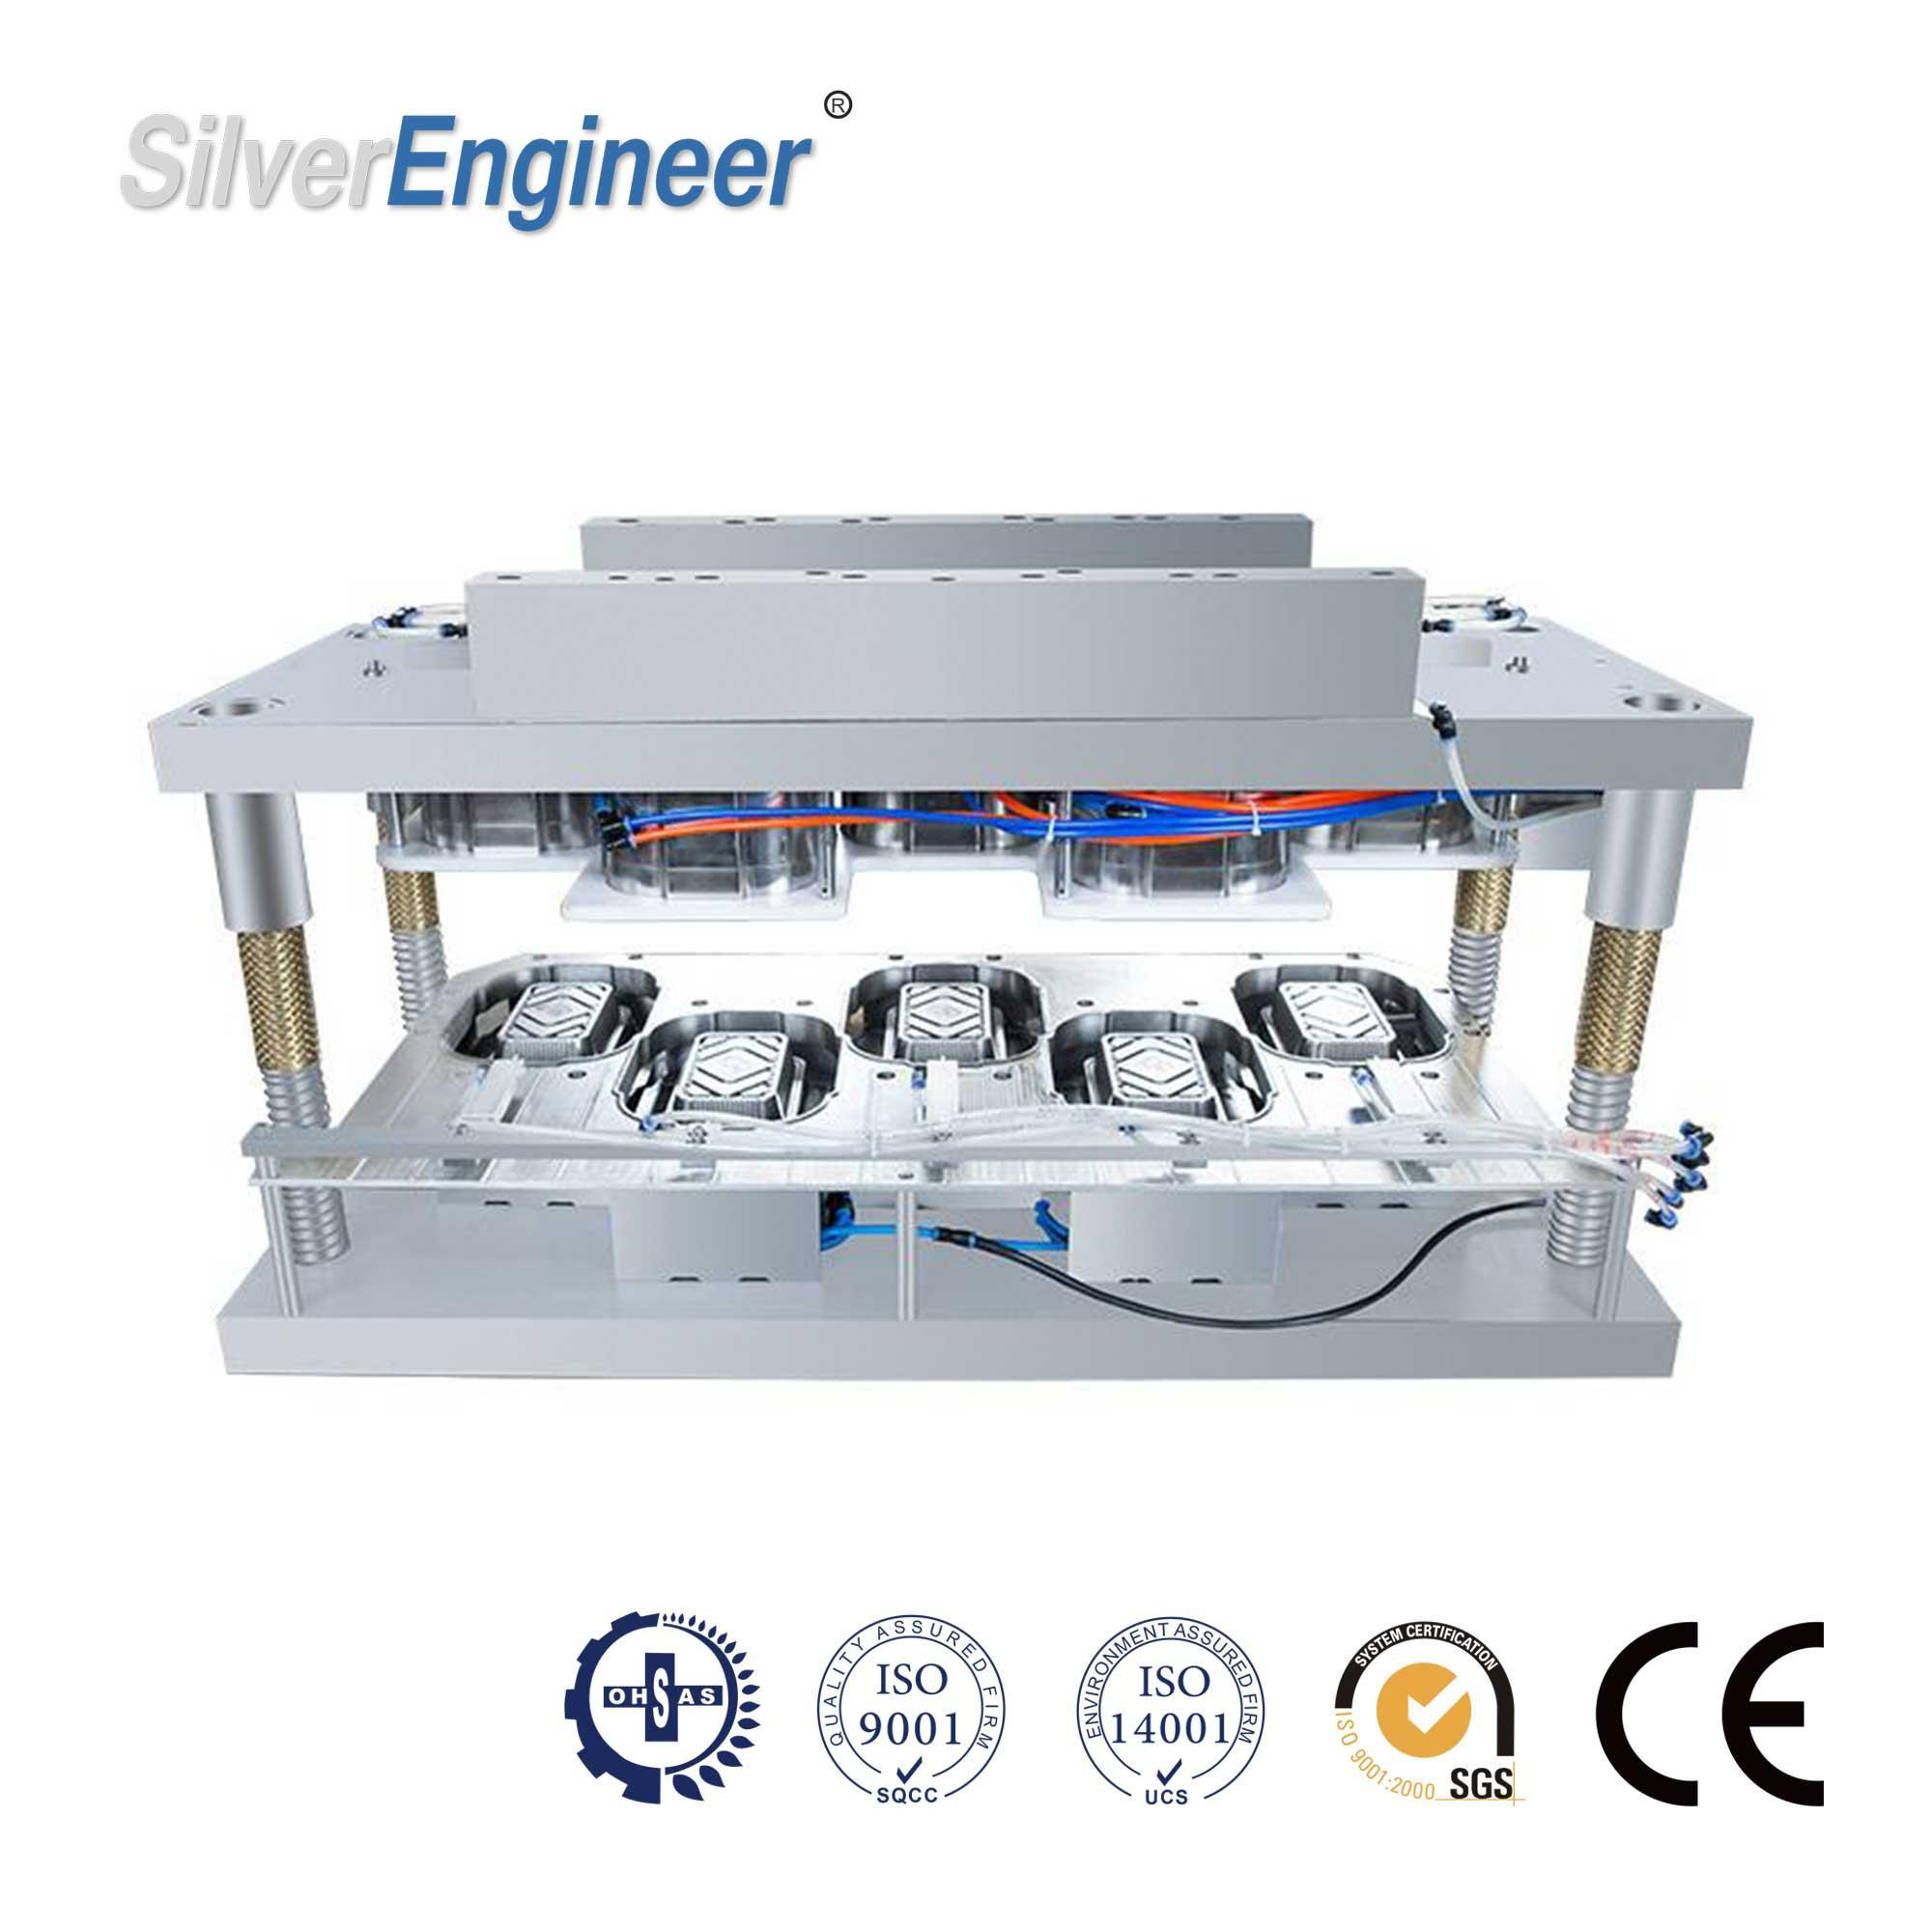 Aluminum Foil Container Mould for Disposable Food Container From Silverengineer 2